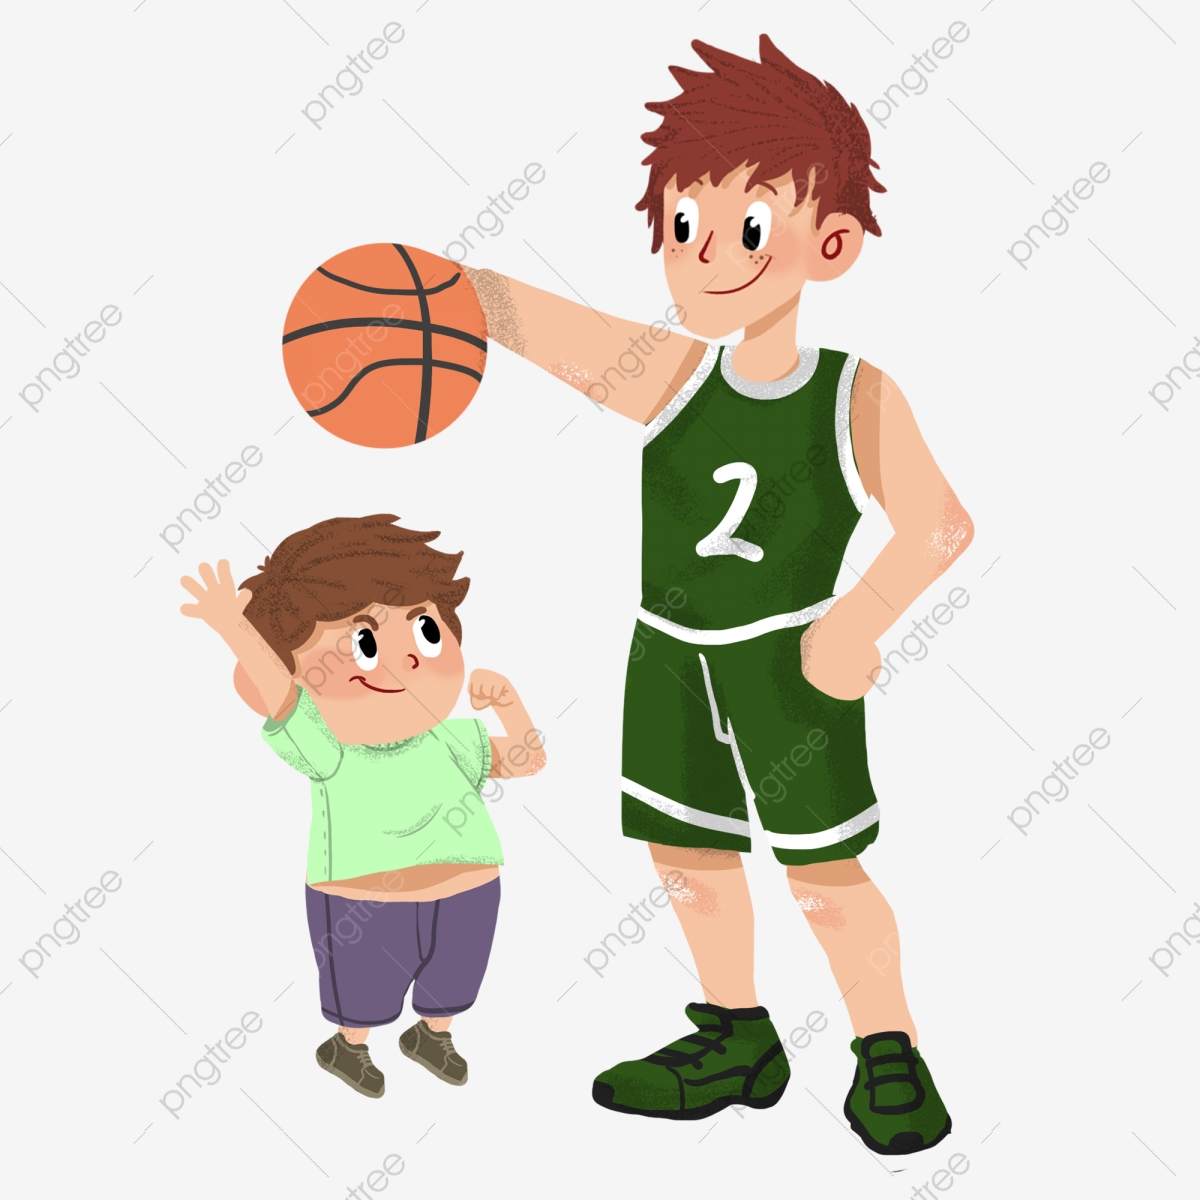 Basketball Clipart And Quotes Png 1 » Clipart Collections - Play Basketball  En Ingles Transparent Png (#3717627) - PinClipart